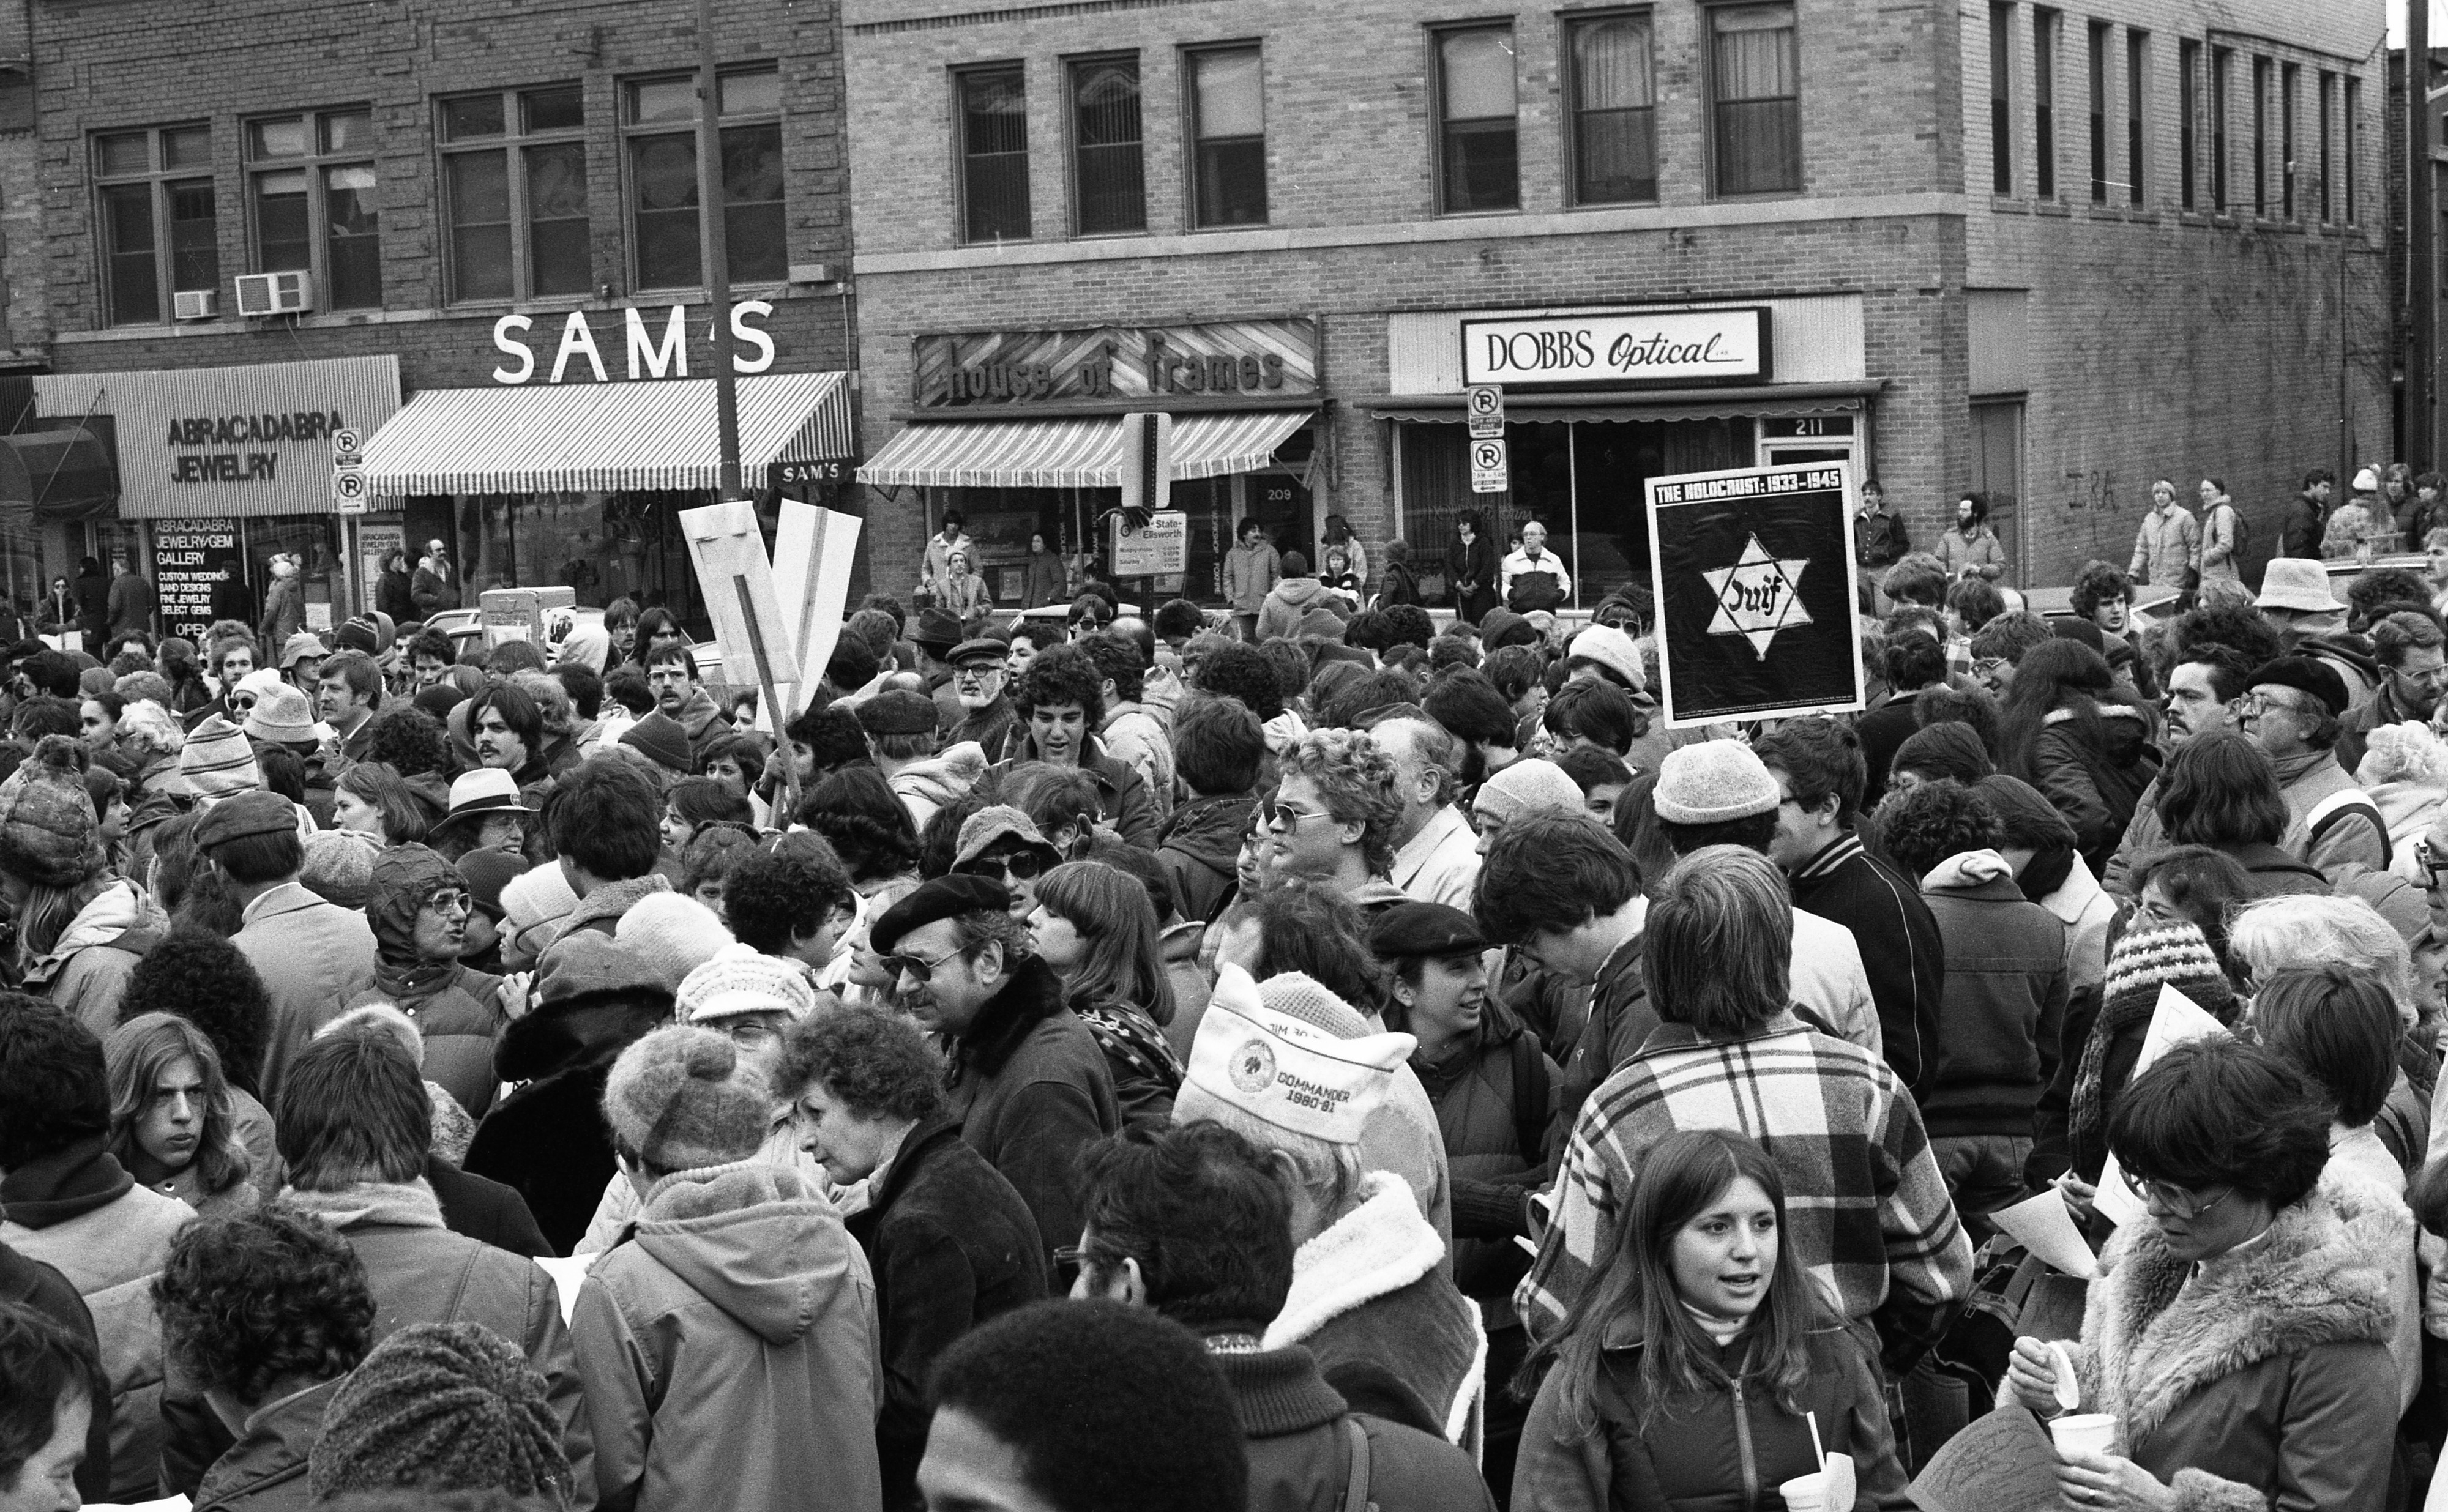 Neo-Nazi March Counter-Demonstration Fills Liberty Street at Federal Building, March 1982 image